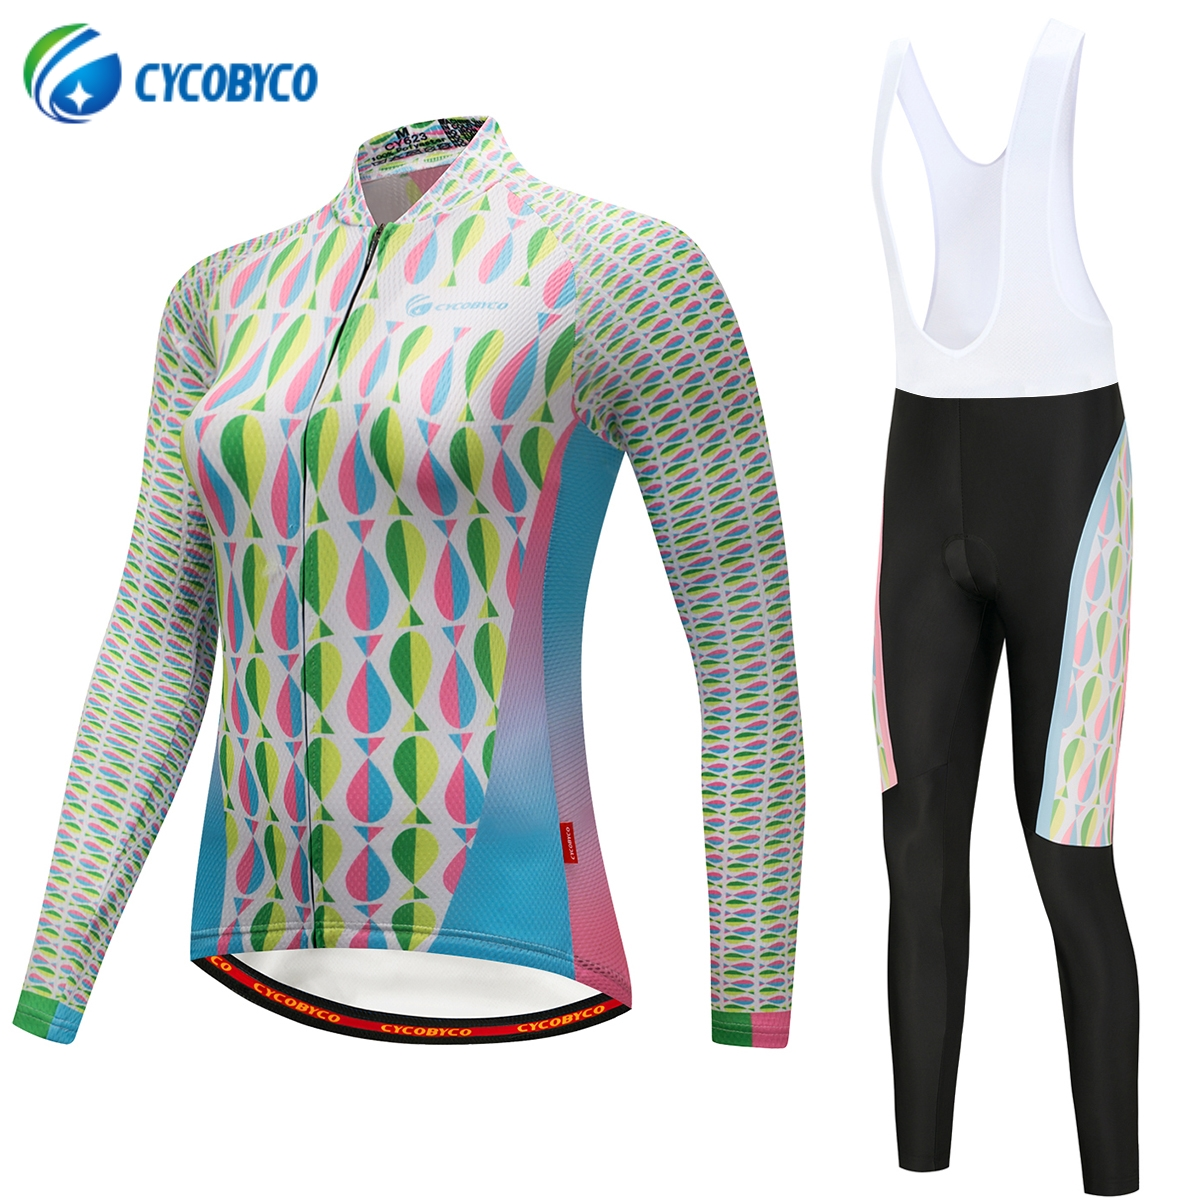 Cycobyco Autumn Mermaid Women Cycling Jersey Set  Mountian Bike Wear Ropa  Ciclismo Cycling Bicycle Long Clothes Cycling Clothing 8c5d8b711